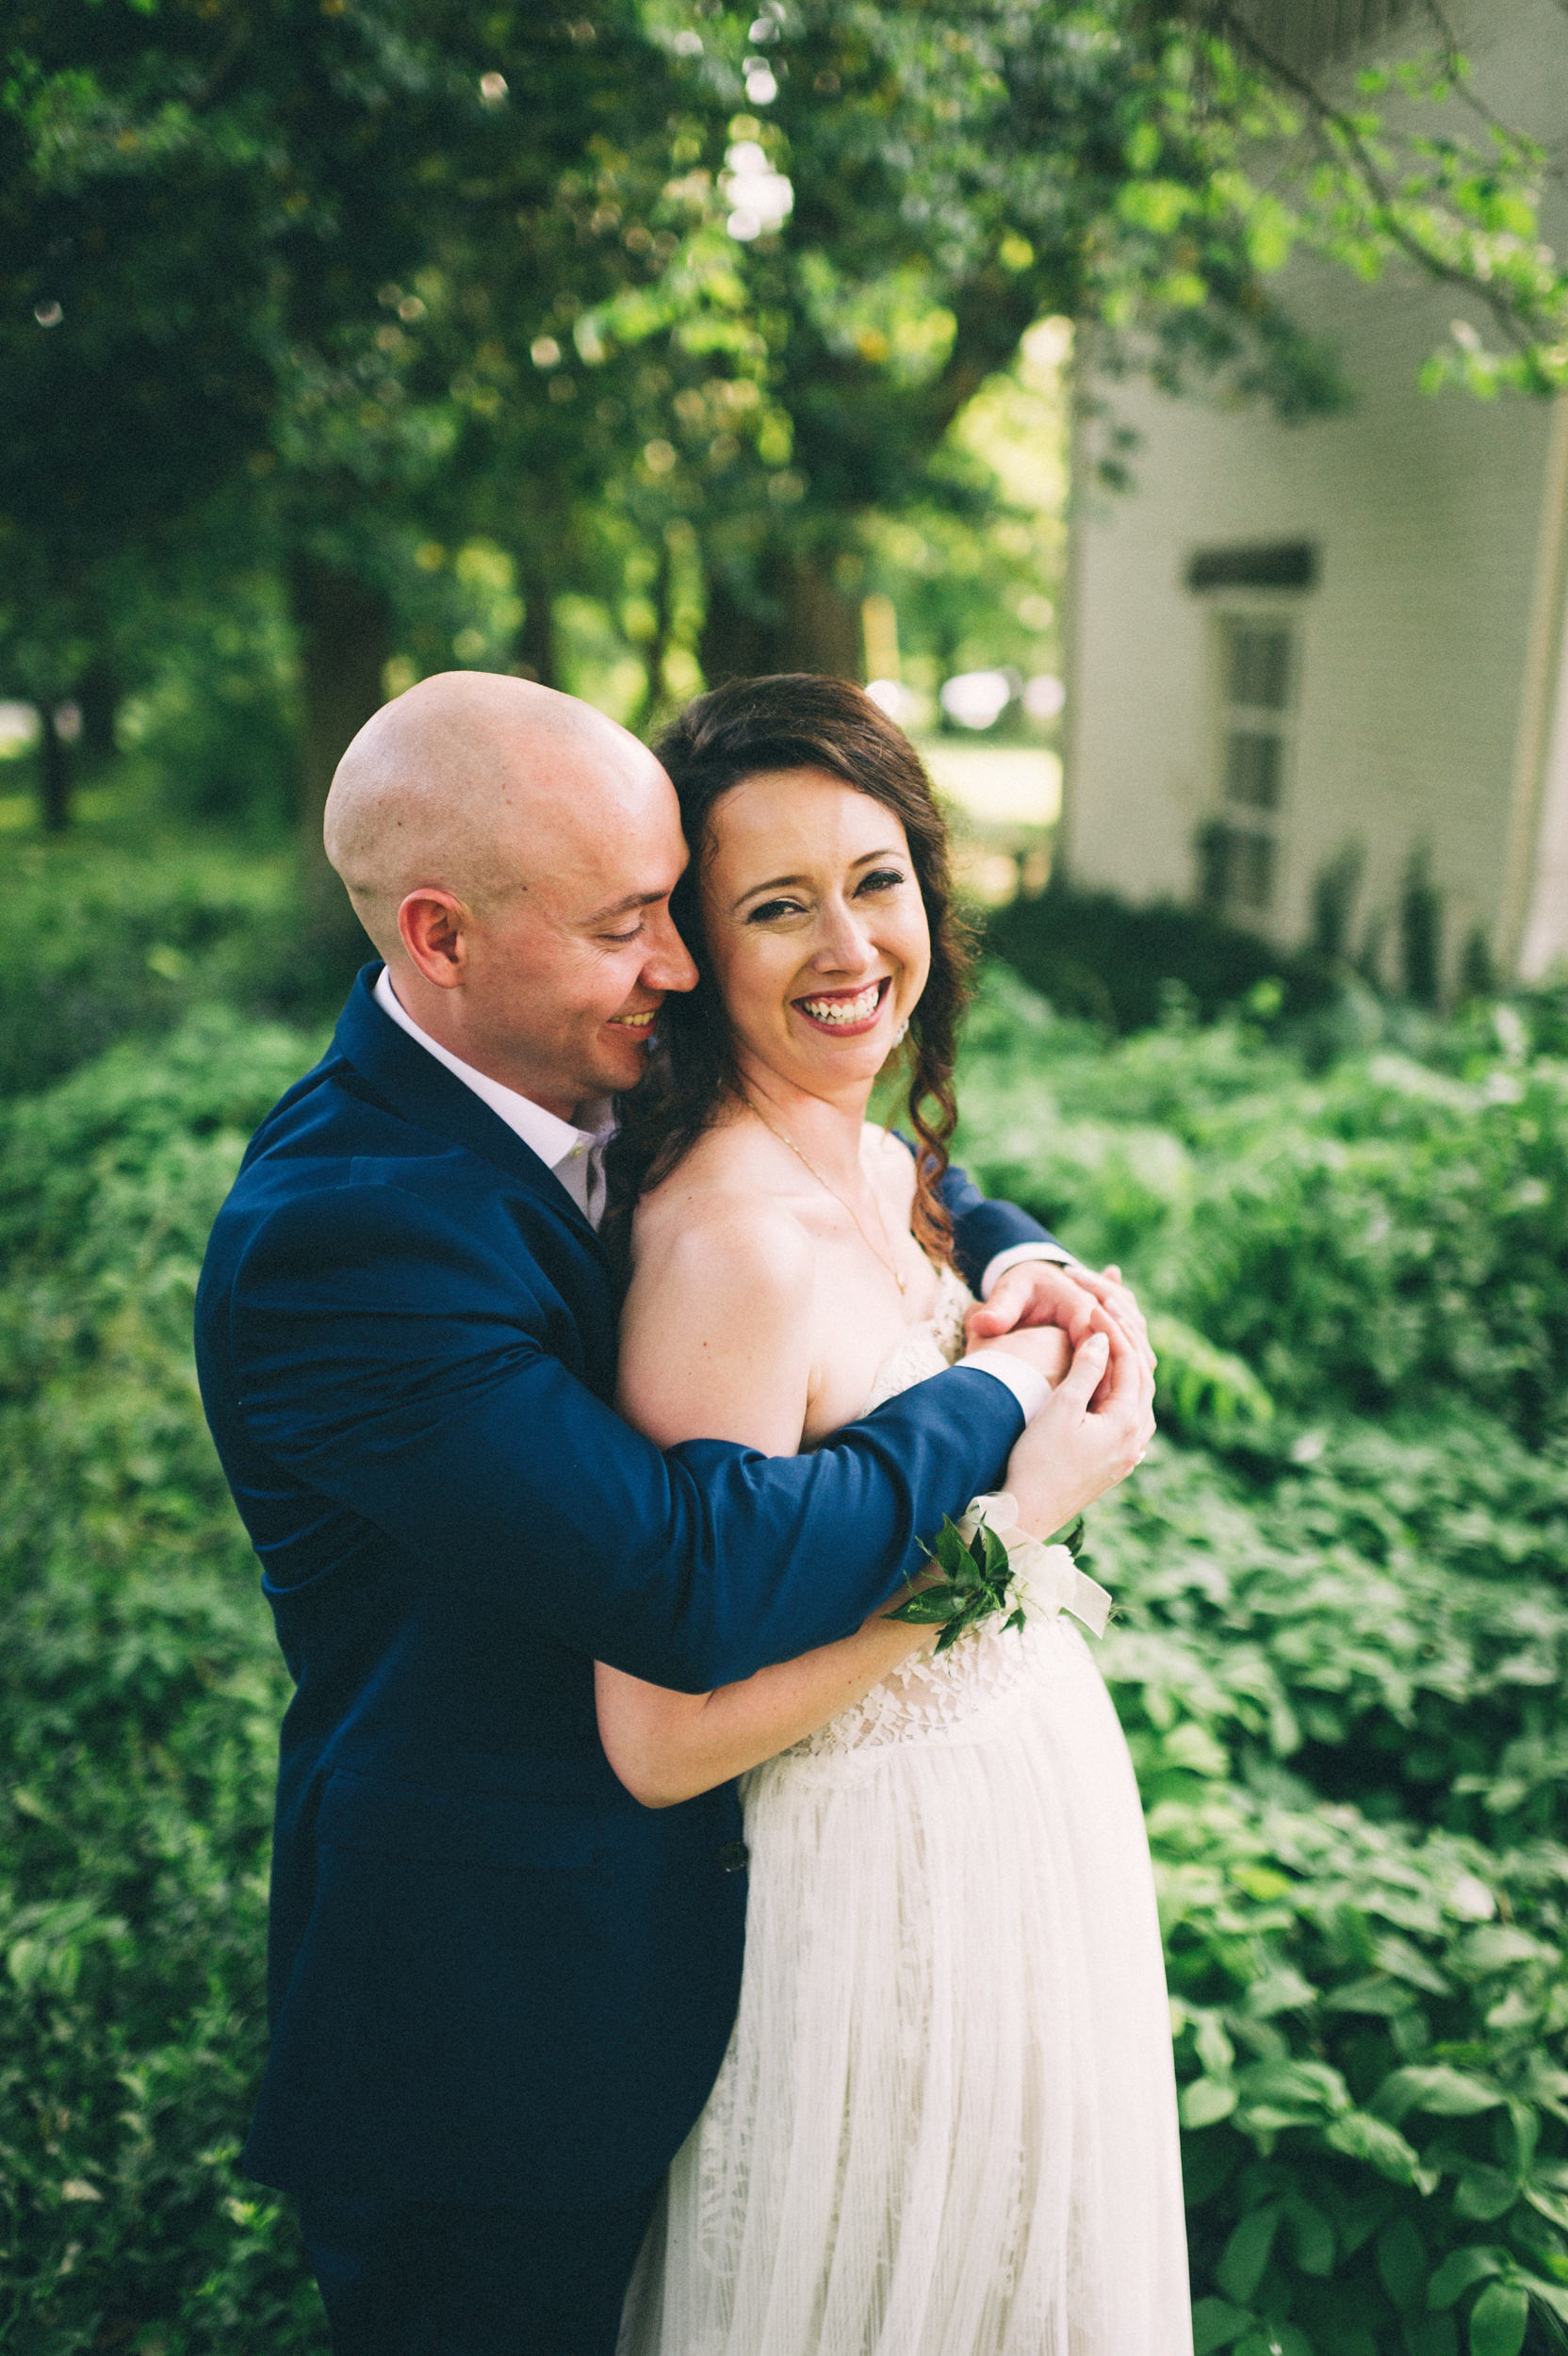 cassie-drew-wedding-farmington-sarah-katherine-davis-photography-424edit.jpg